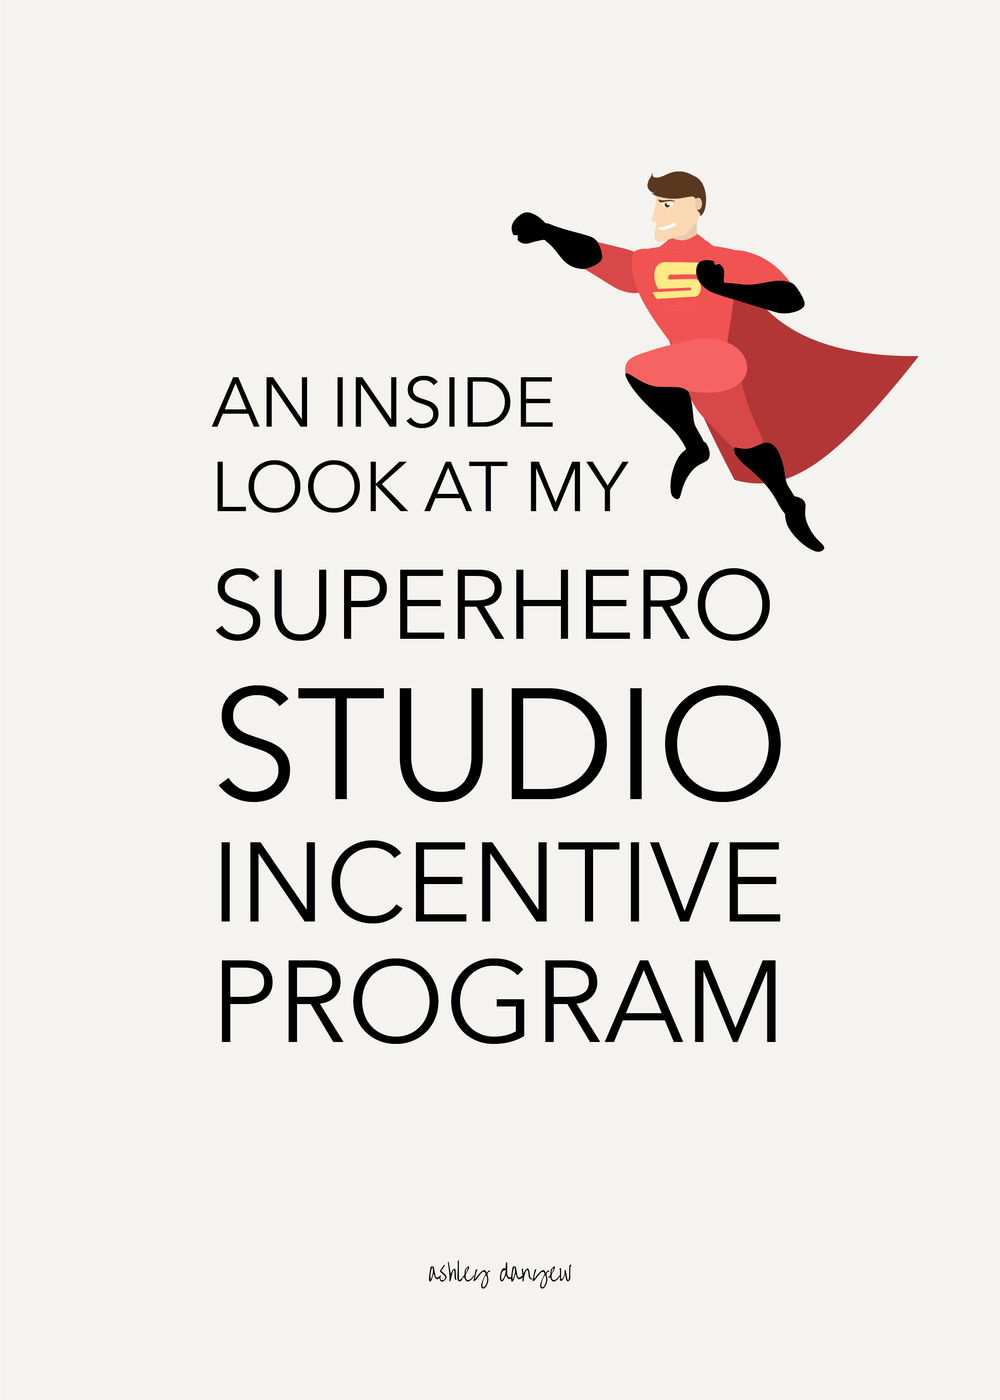 An Inside Look at My Superhero Studio Incentive Program-11.png